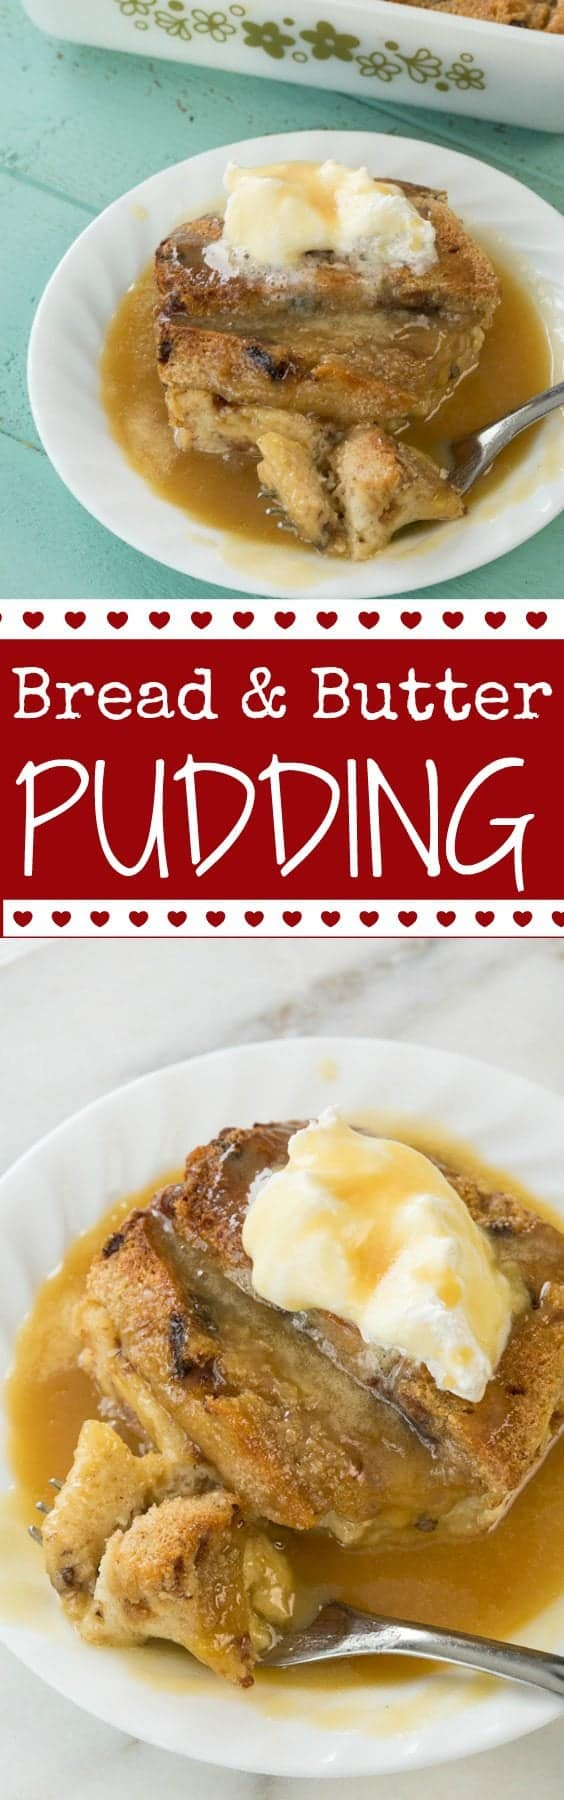 Bread and Butter Pudding Recipe from @kitchenmagpie